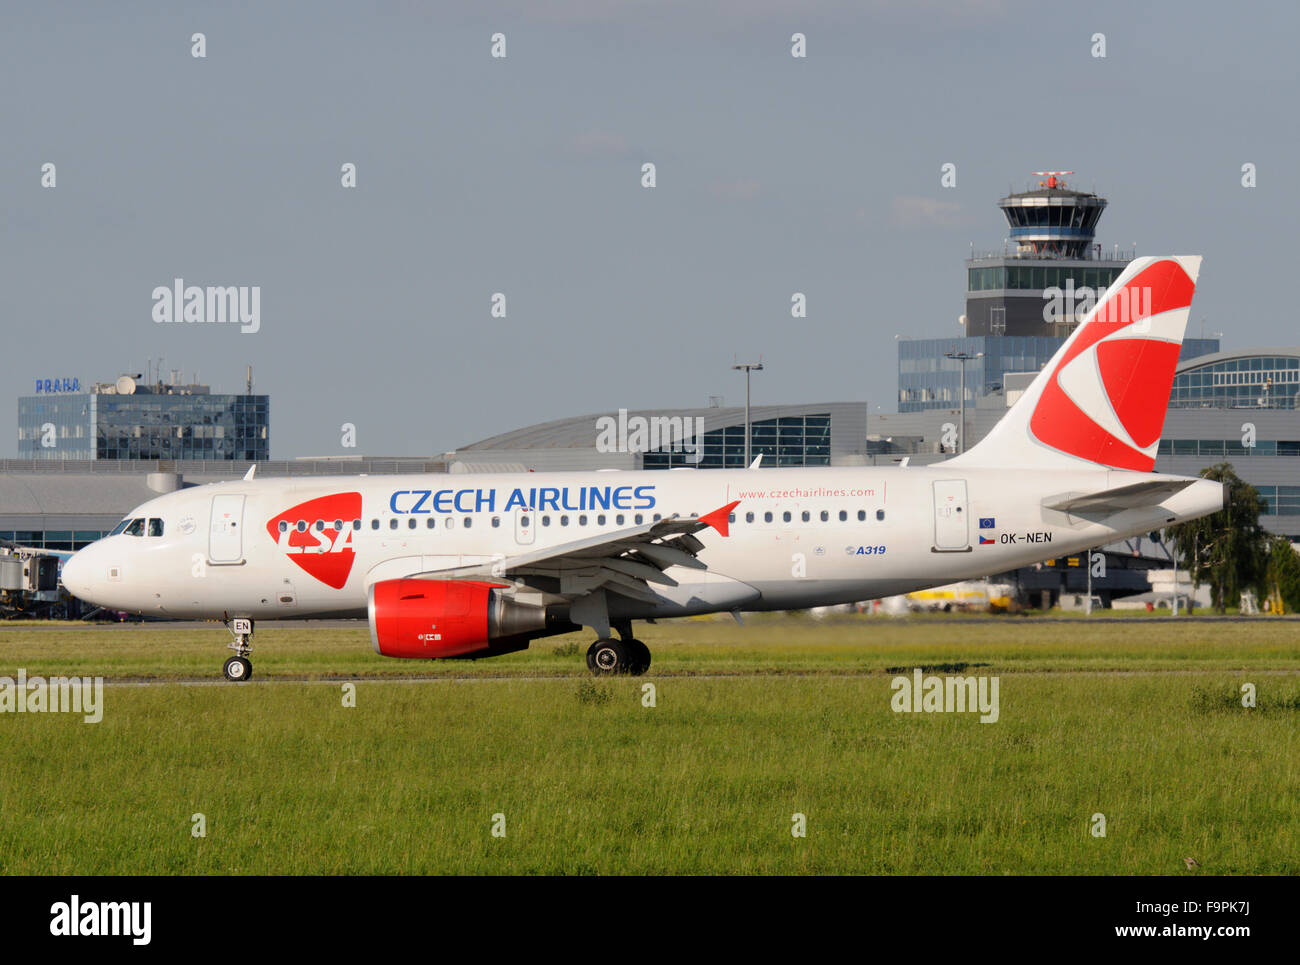 Czech Airlines Airbus  A319 on taxiway with ATC and terminals - Stock Image